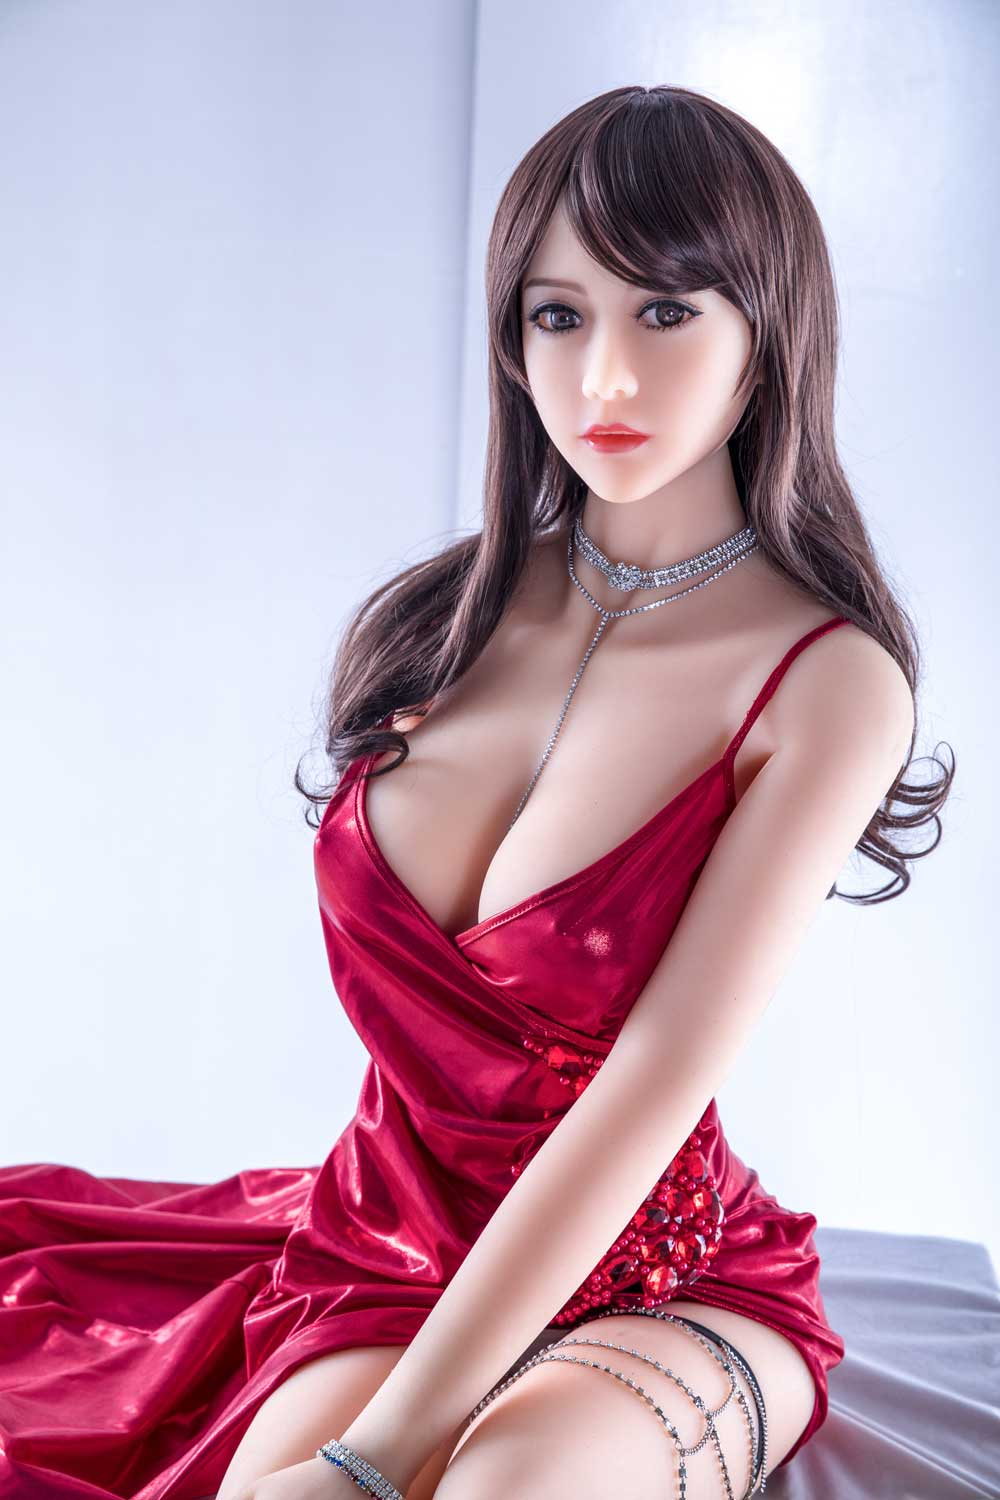 Sex doll with necklace